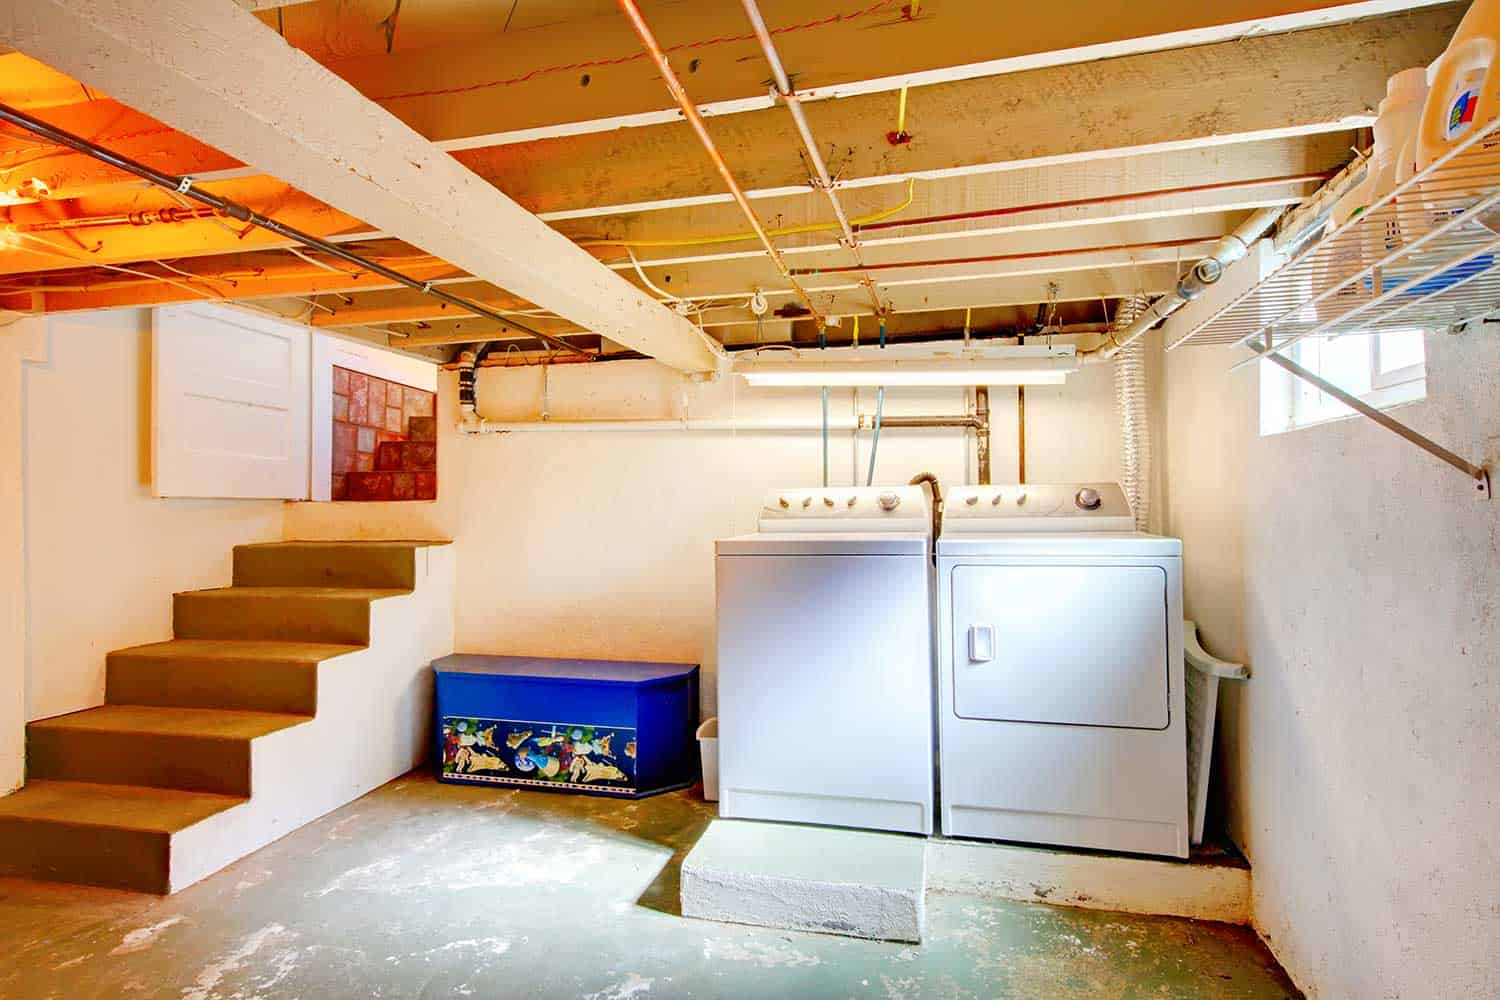 Basement laundry room with old appliances